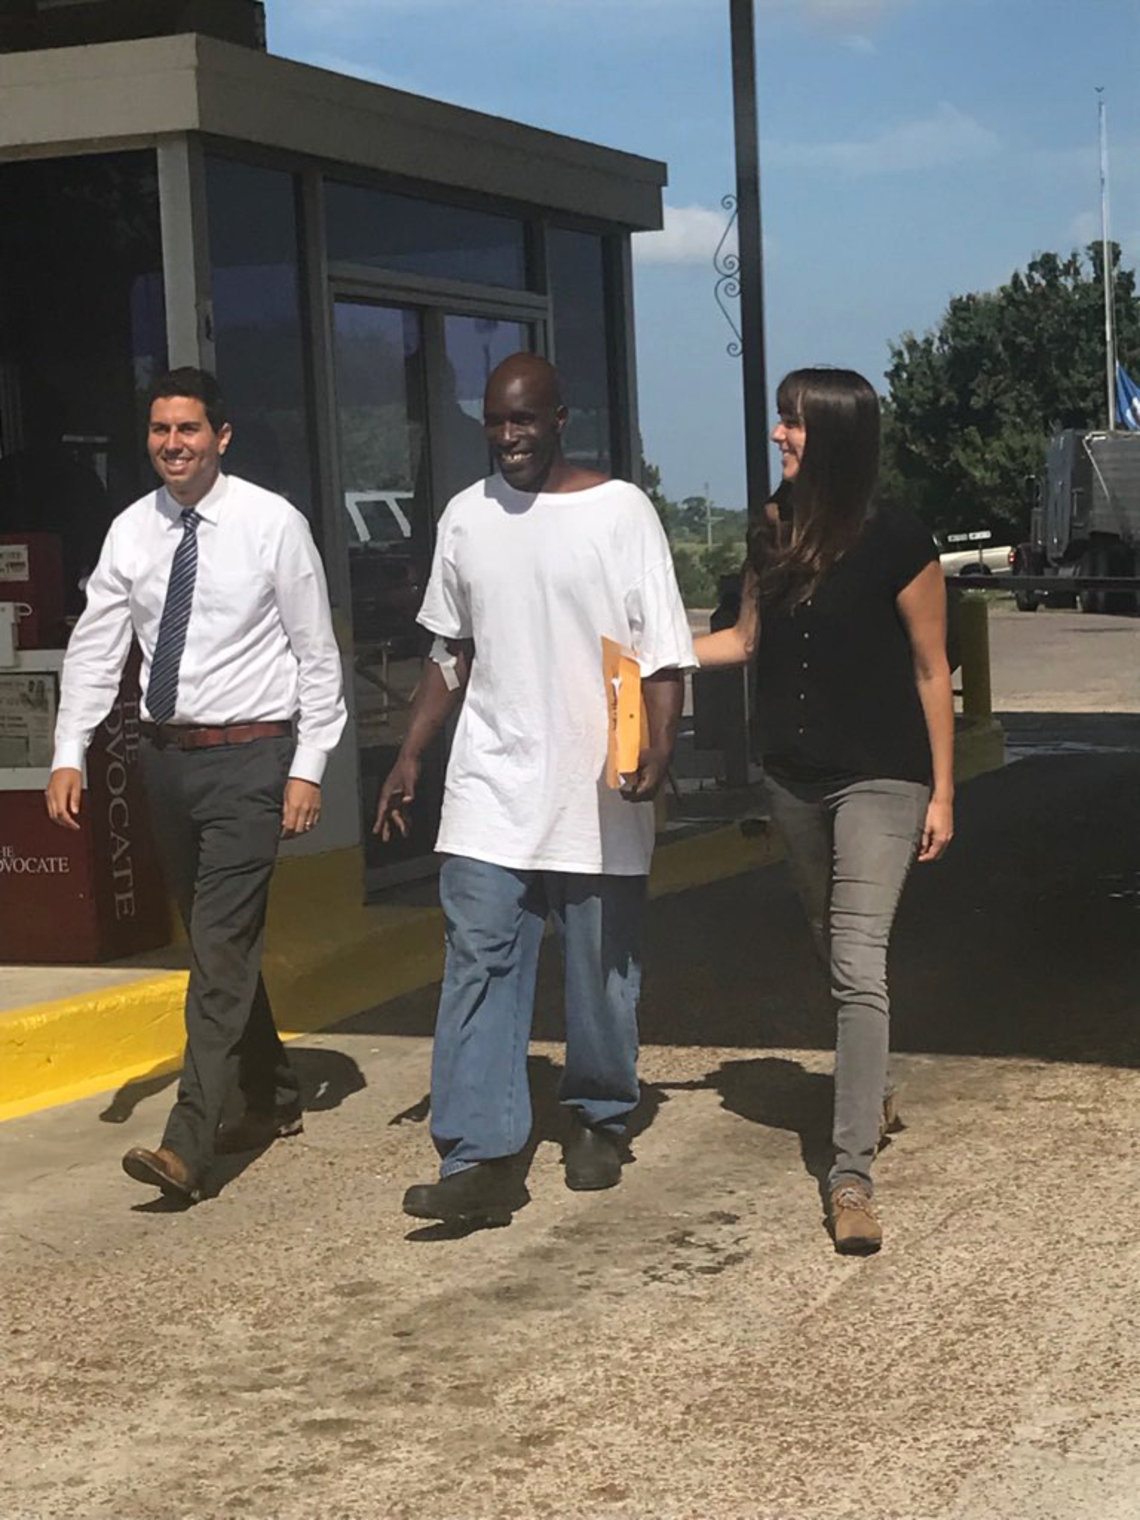 Corey Williams with Amir Ali and Blythe Taplin, two of his lawyers, leaving Louisiana State Penitentiary in Angola, La., on Tuesday.